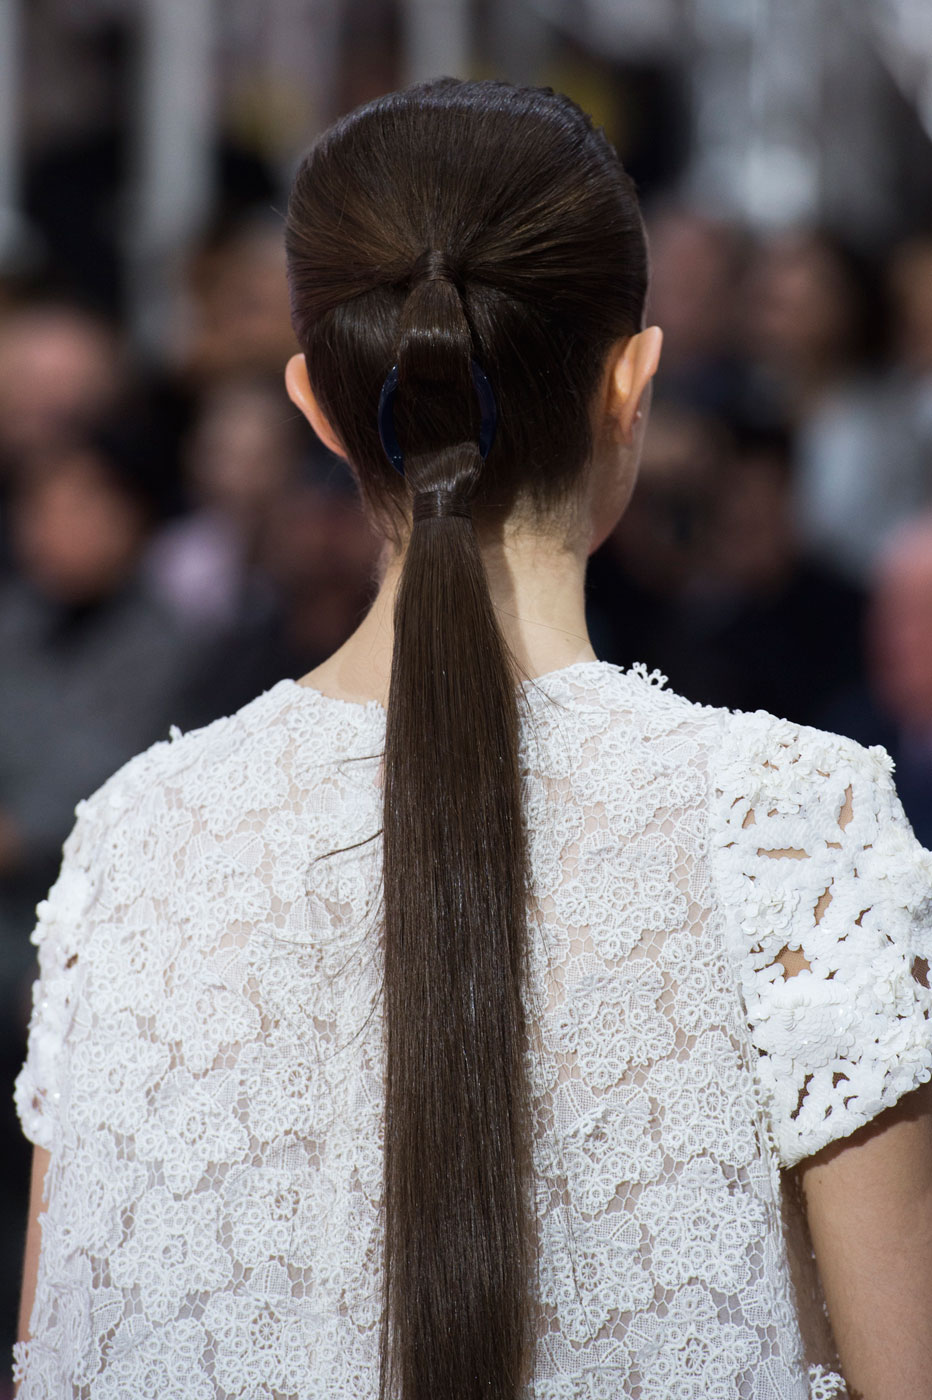 Christian-Dior-fashion-runway-show-close-ups-haute-couture-paris-spring-summer-2015-the-impression-198